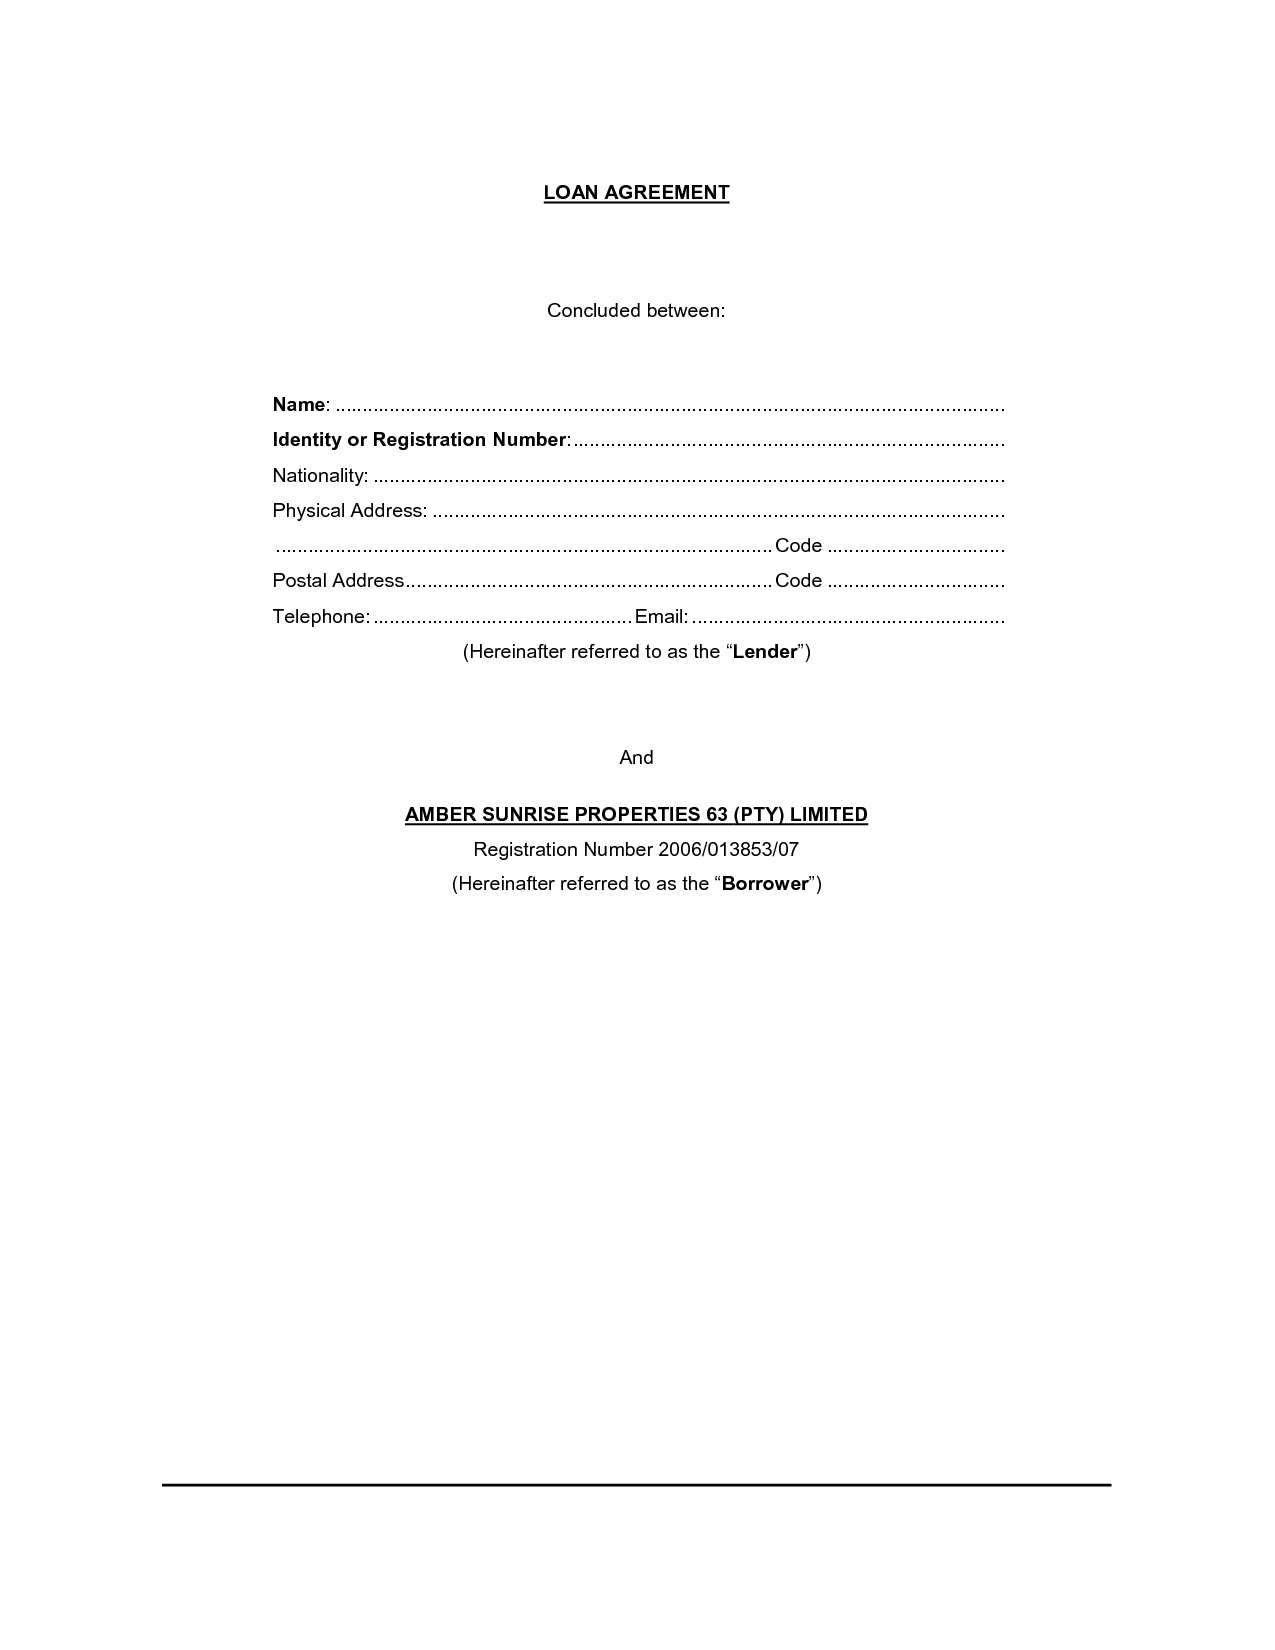 loanagreementtemplatefree simple loan contract – Sample Loan Documents